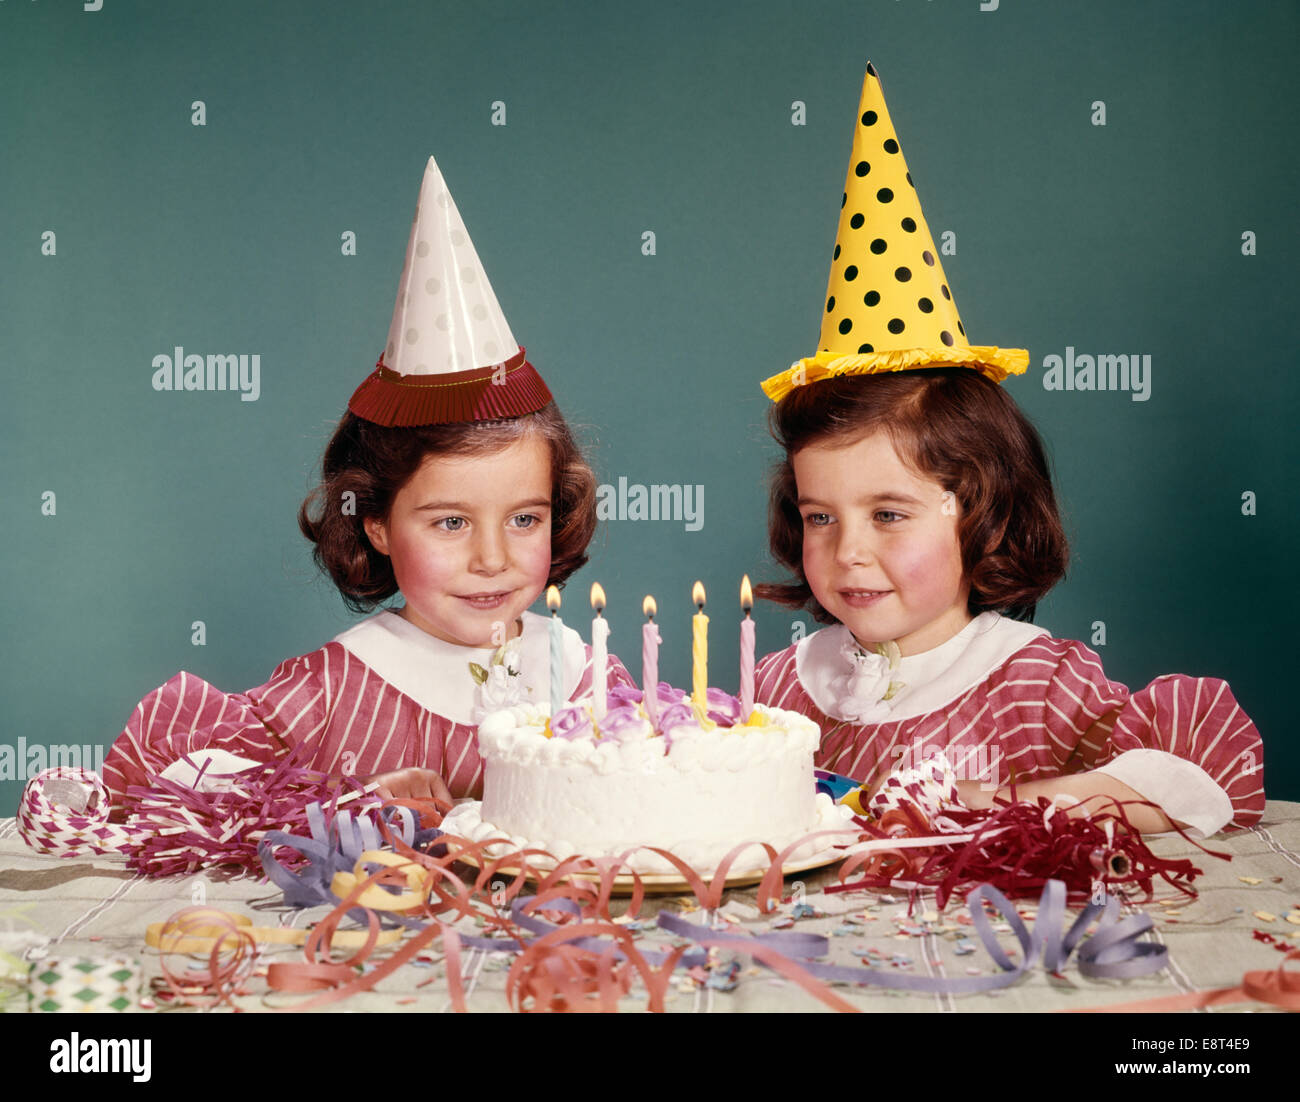 1960s Twin Girls Wearing Party Hats And Birthday Cake With Five